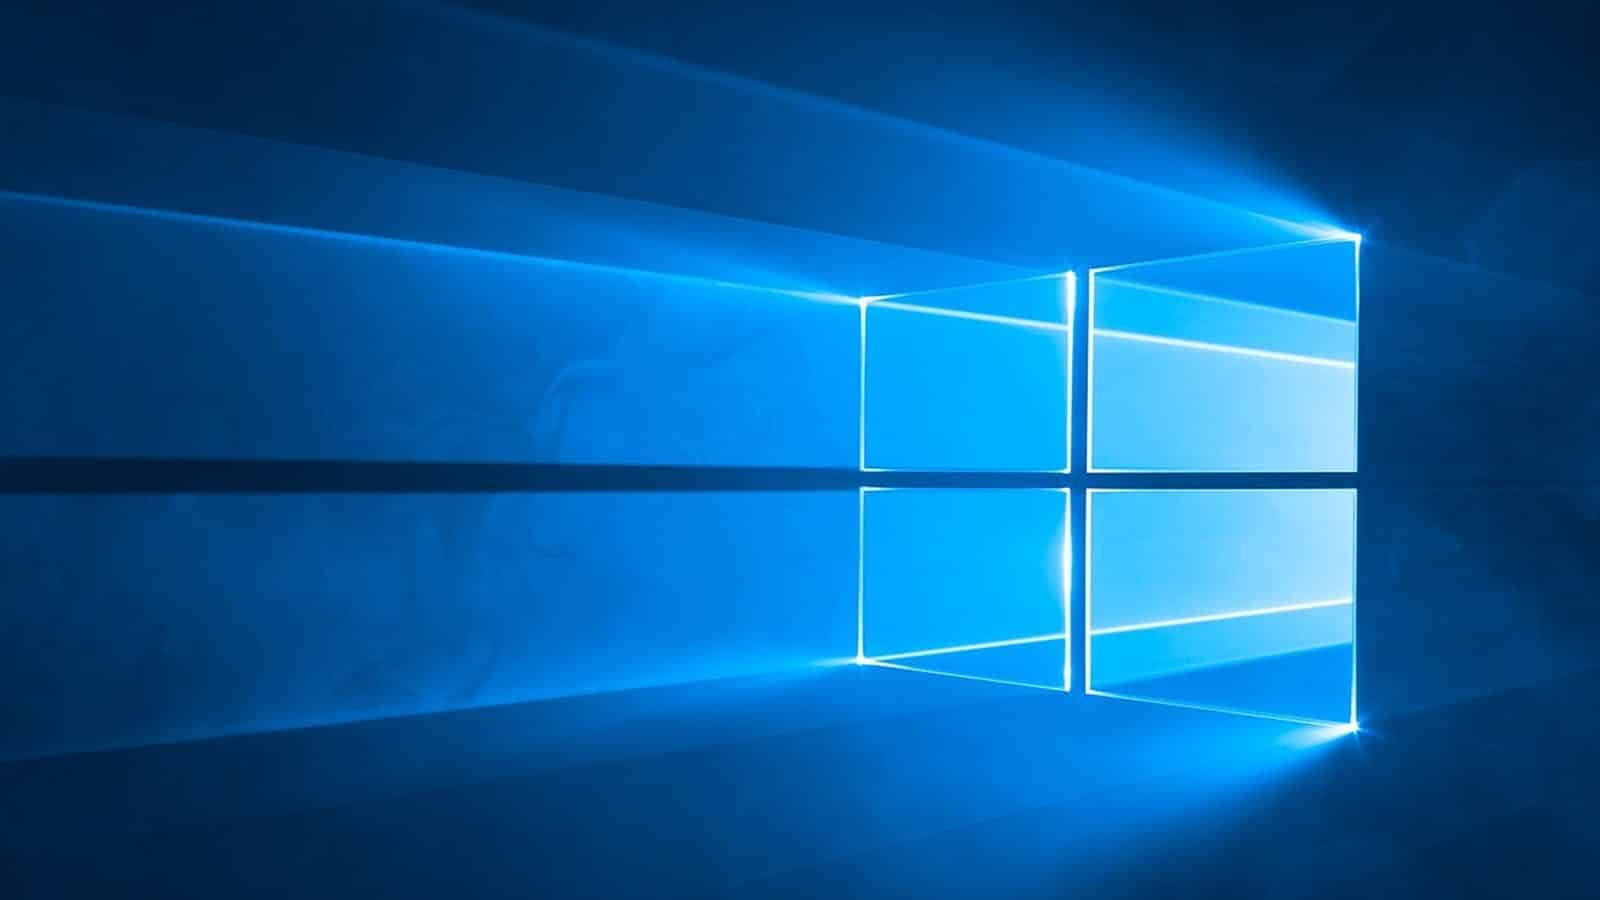 Windows 10 October Update Issues